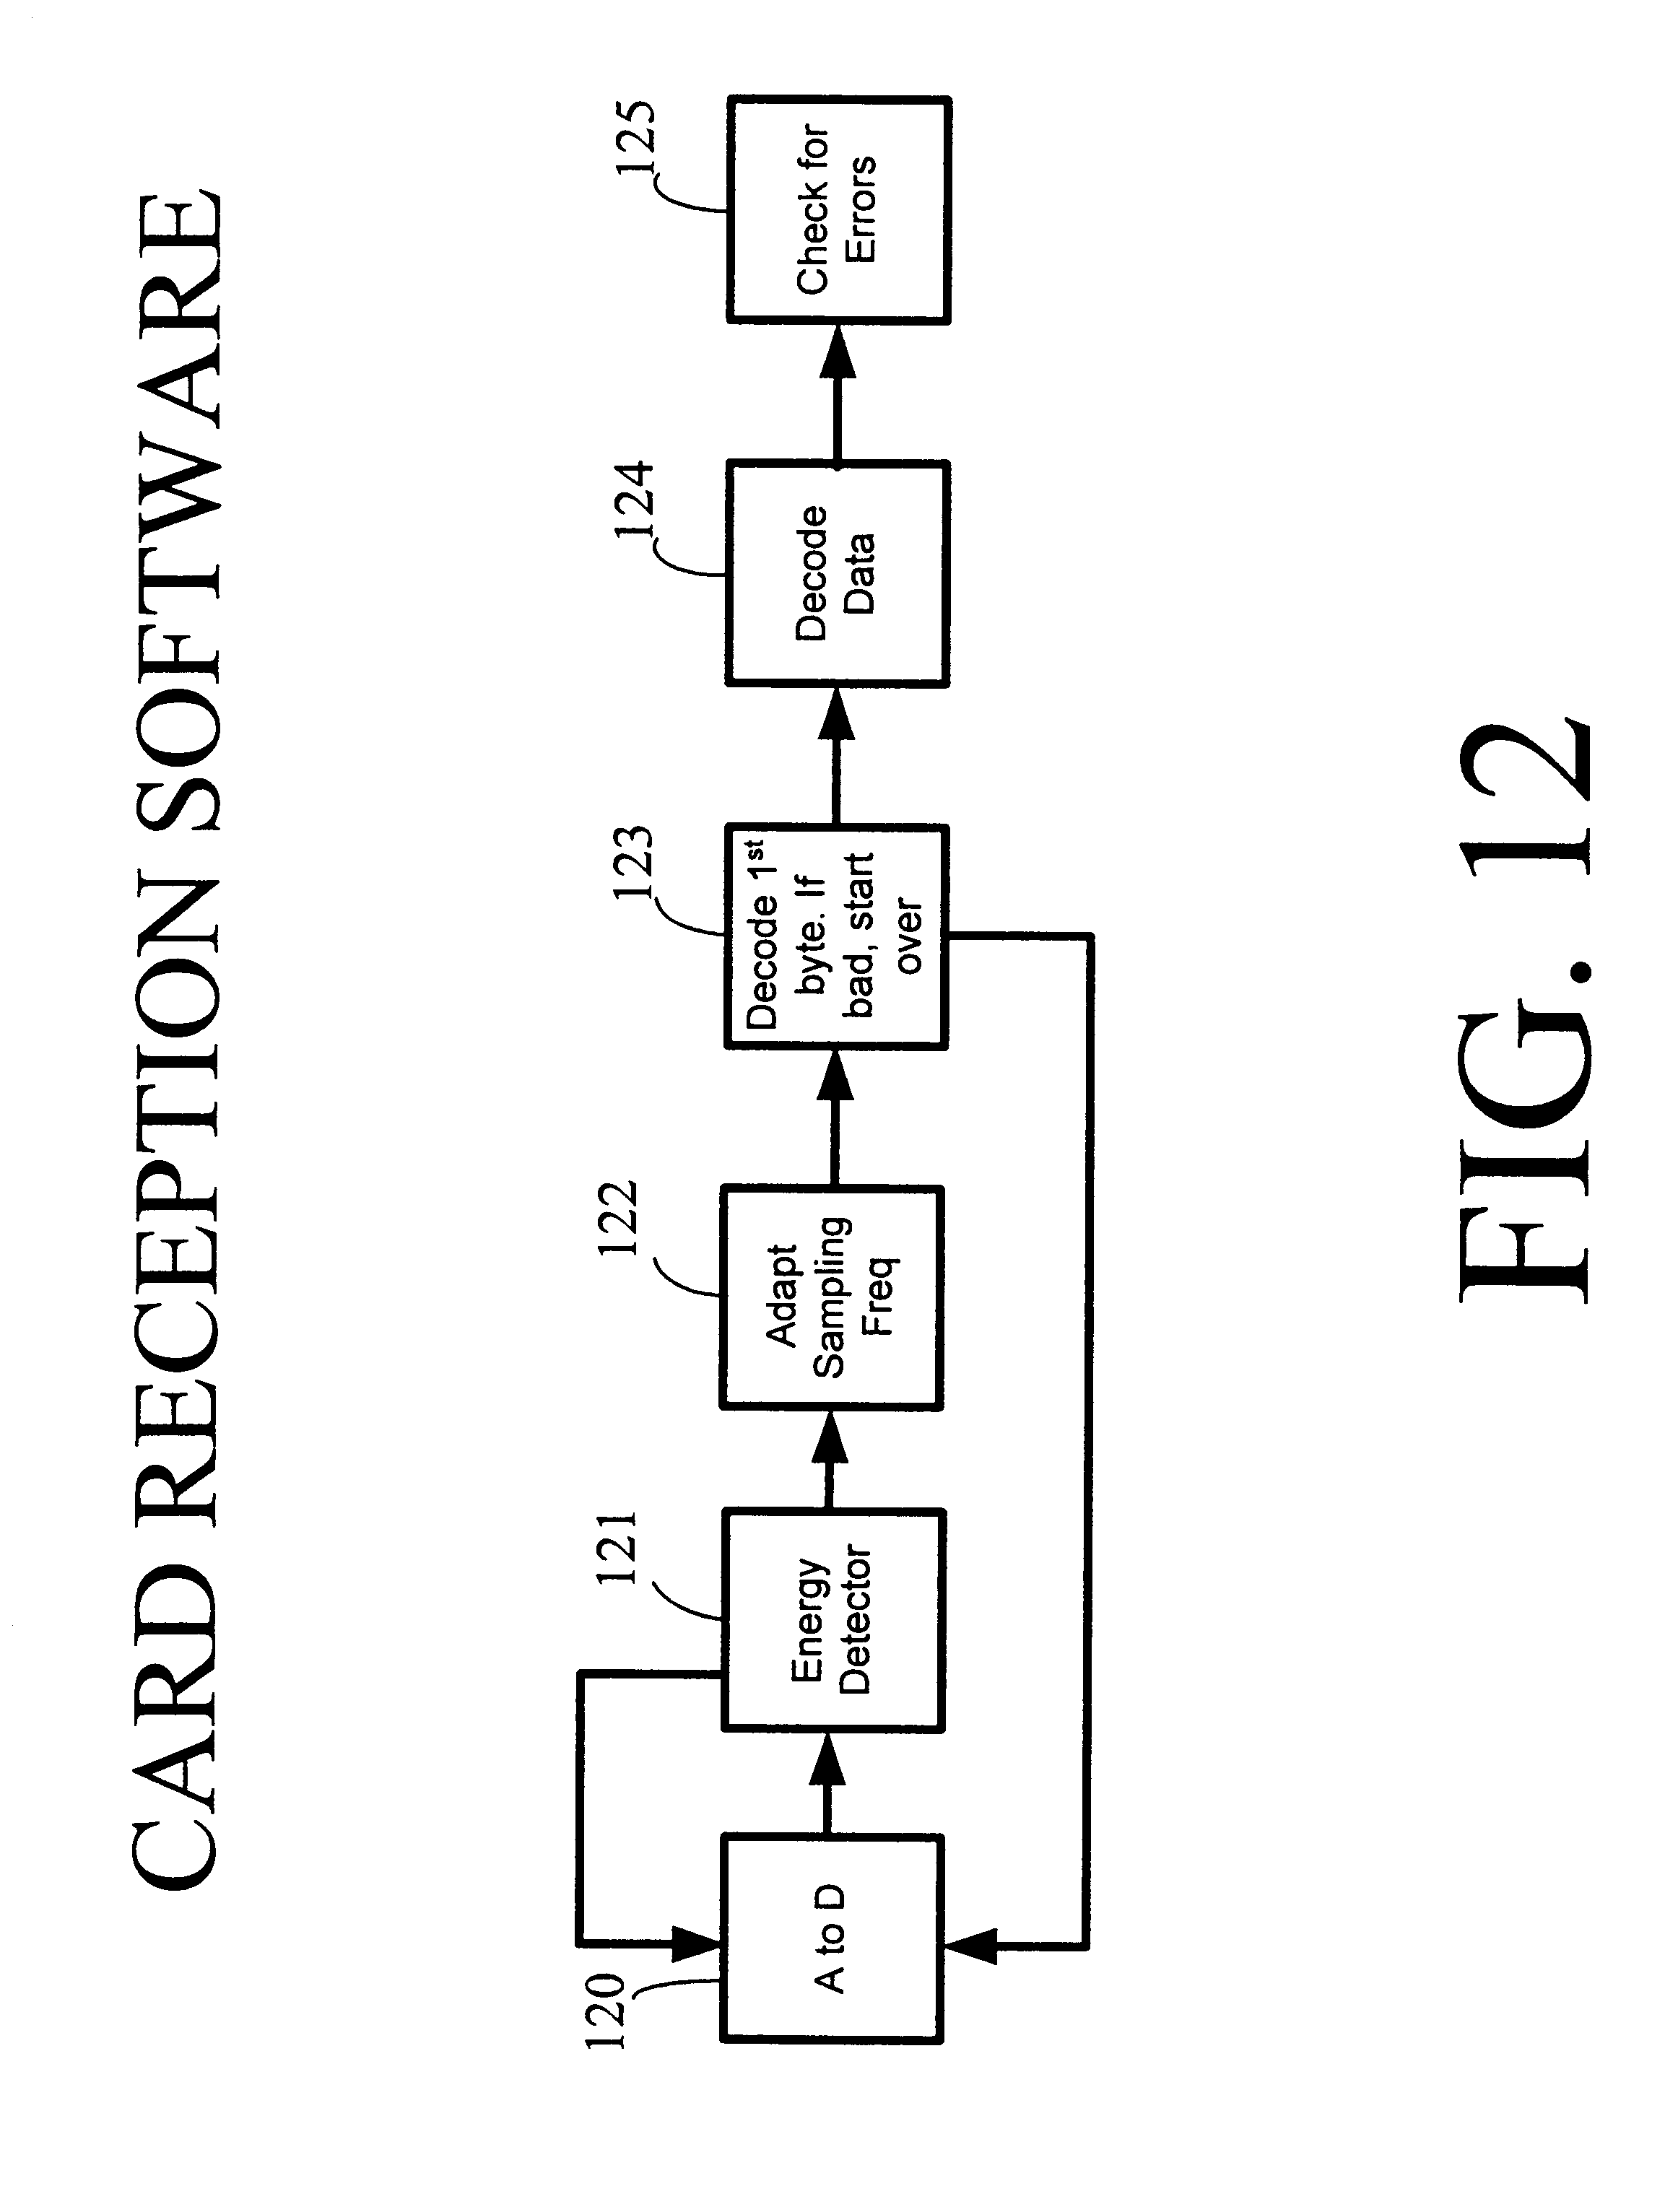 Patent Us 6607136 B1 Frequency Counter Using Pic16f84